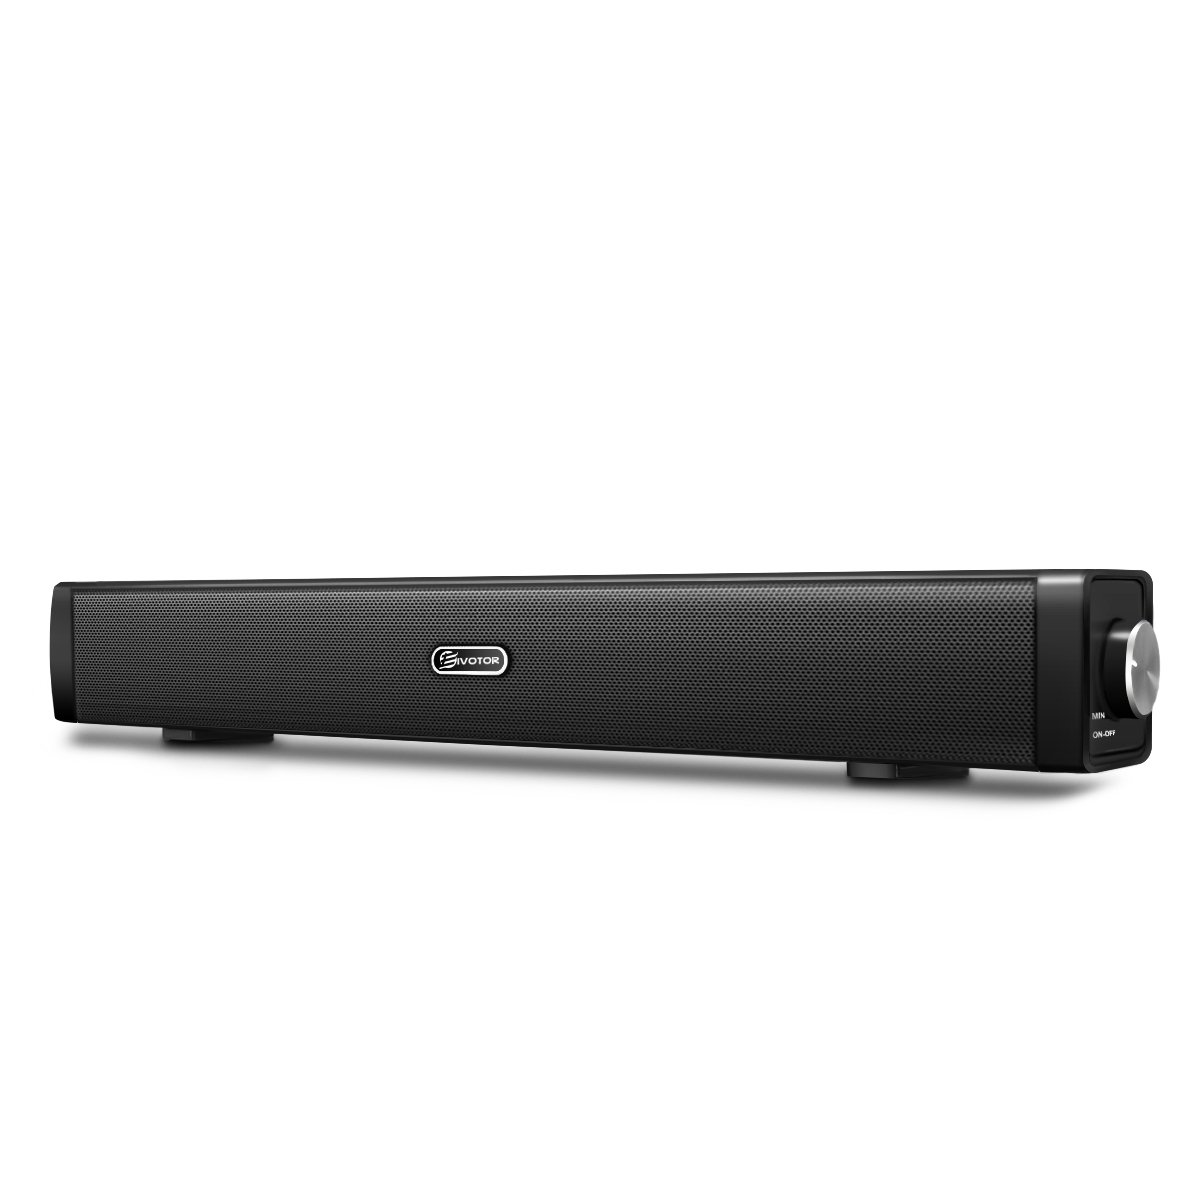 Barra de Sonido,EIVOTOR Barra Inalámbrica para PC Mini Altavoz Soundbar USB Portatil con Puerto AUX de 3,5 mm Estéreo Dual 3D (2x3W),Negro